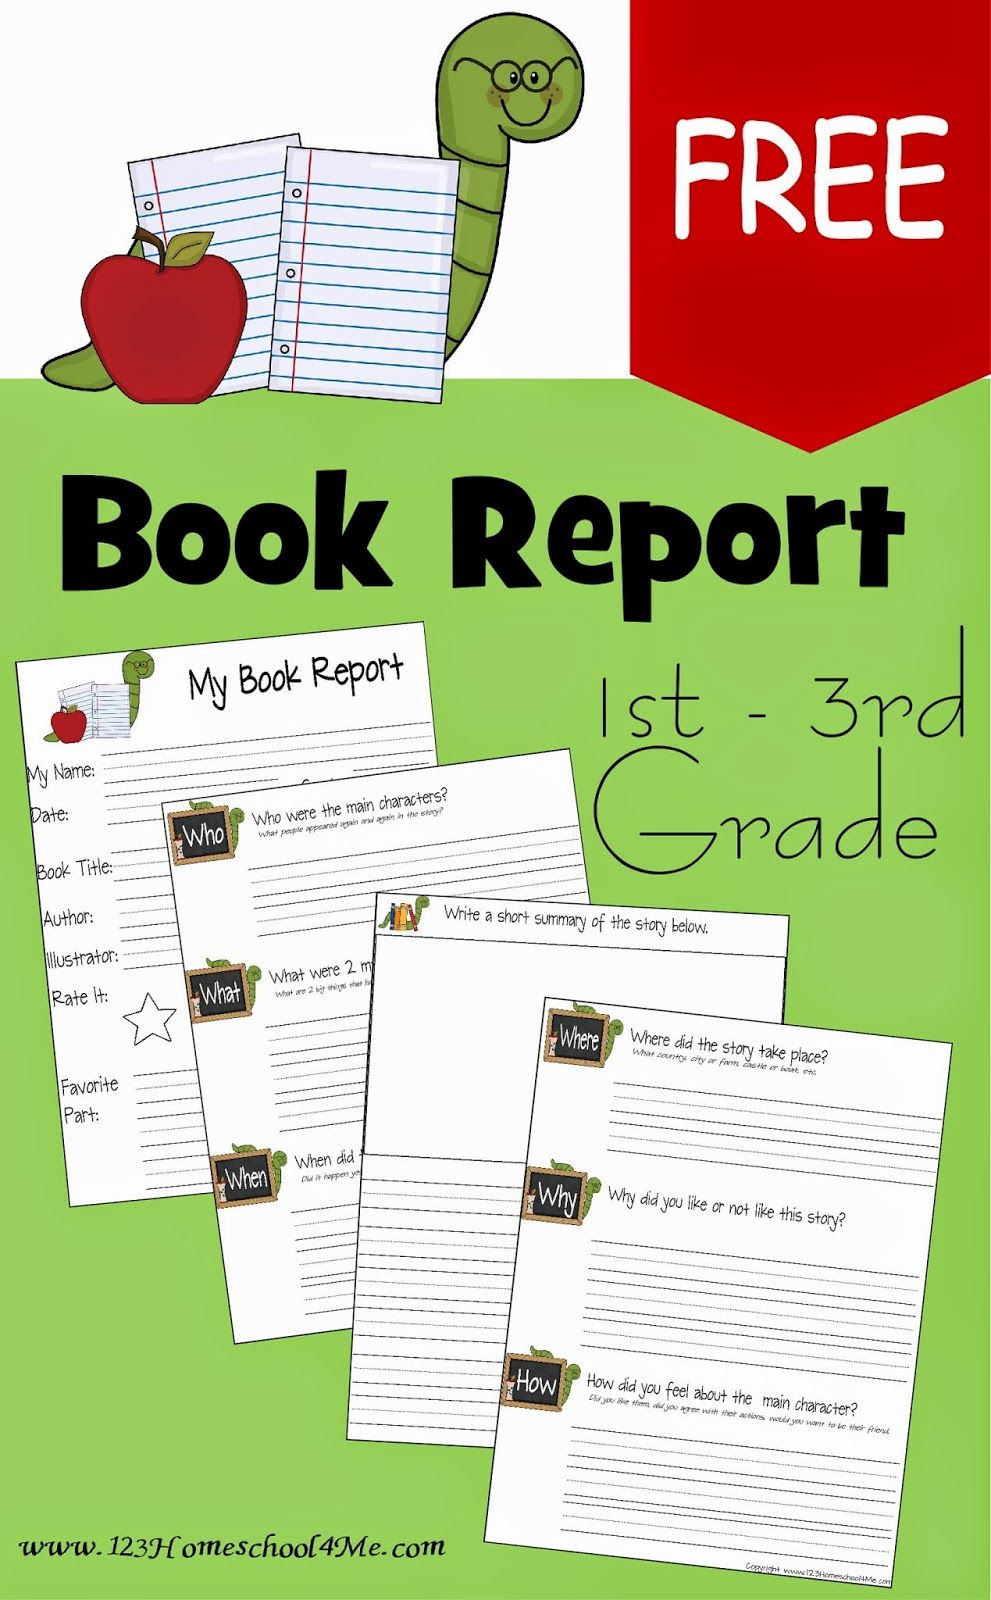 Free Book Report Template | Play Activities For Kids | 3Rd Grade - Free Printable Story Books For Grade 2